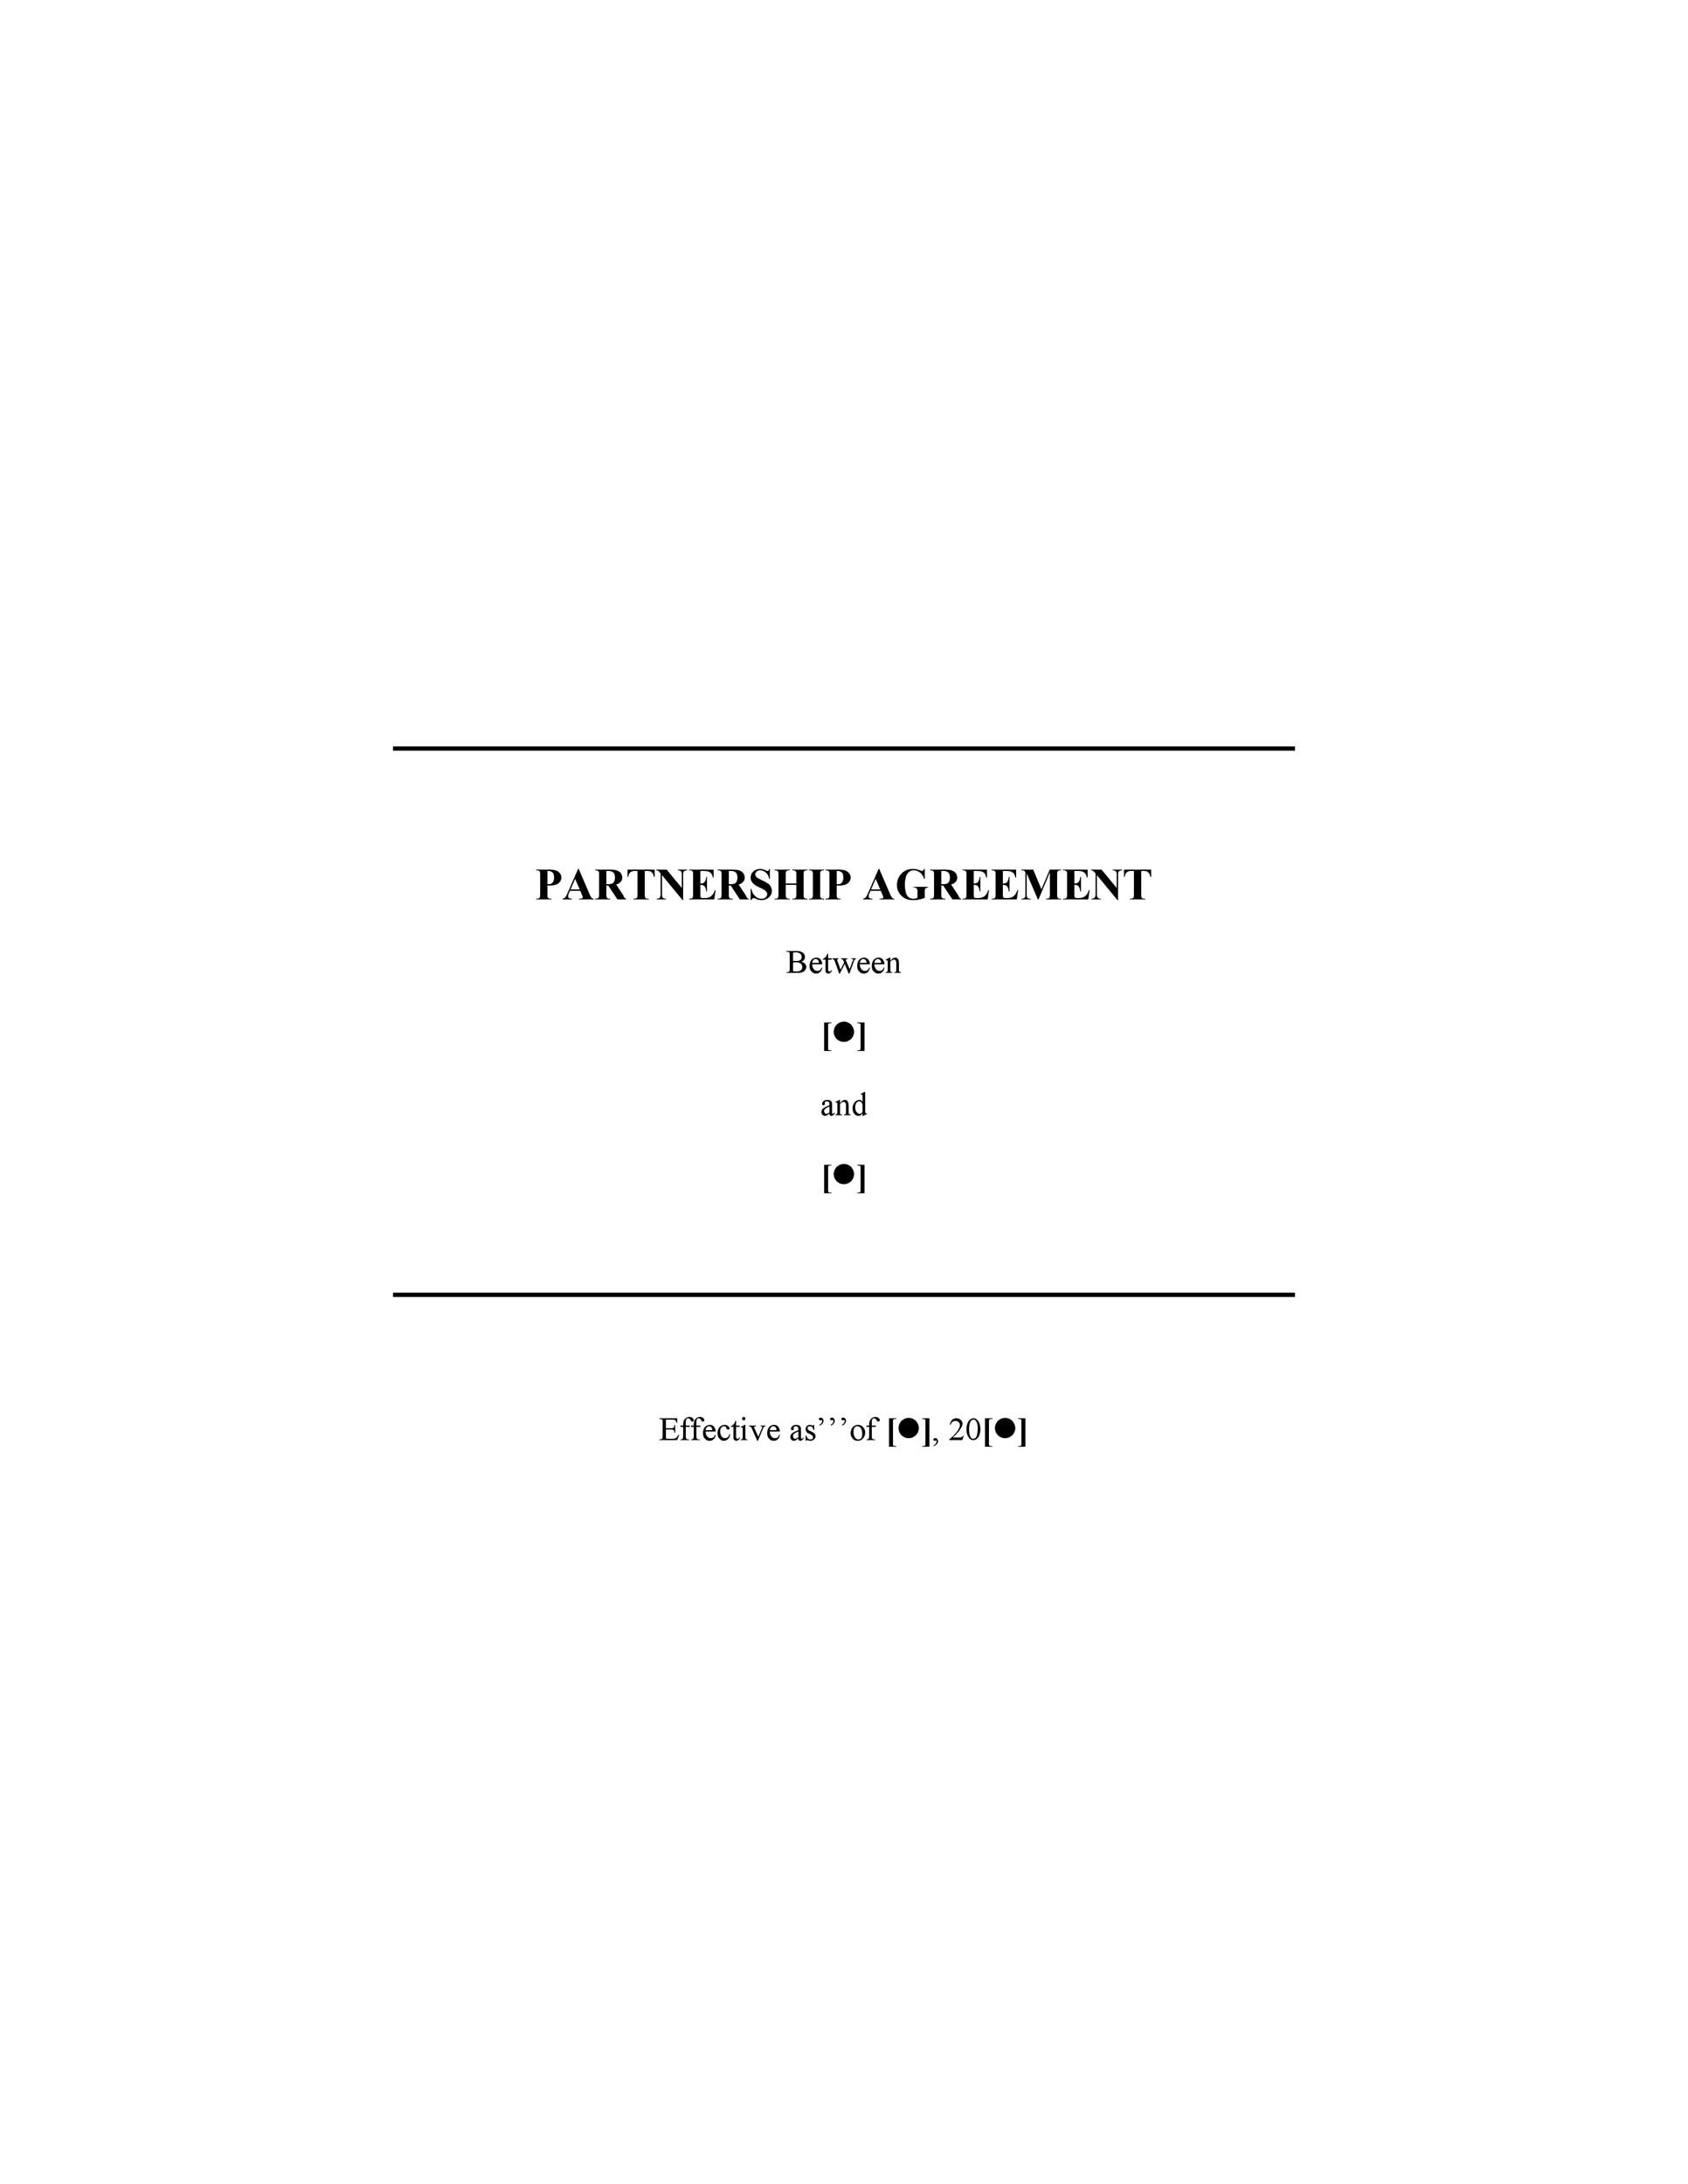 40+ FREE Partnership Agreement Templates (Business, General) - Sample Business Partnership Agreement